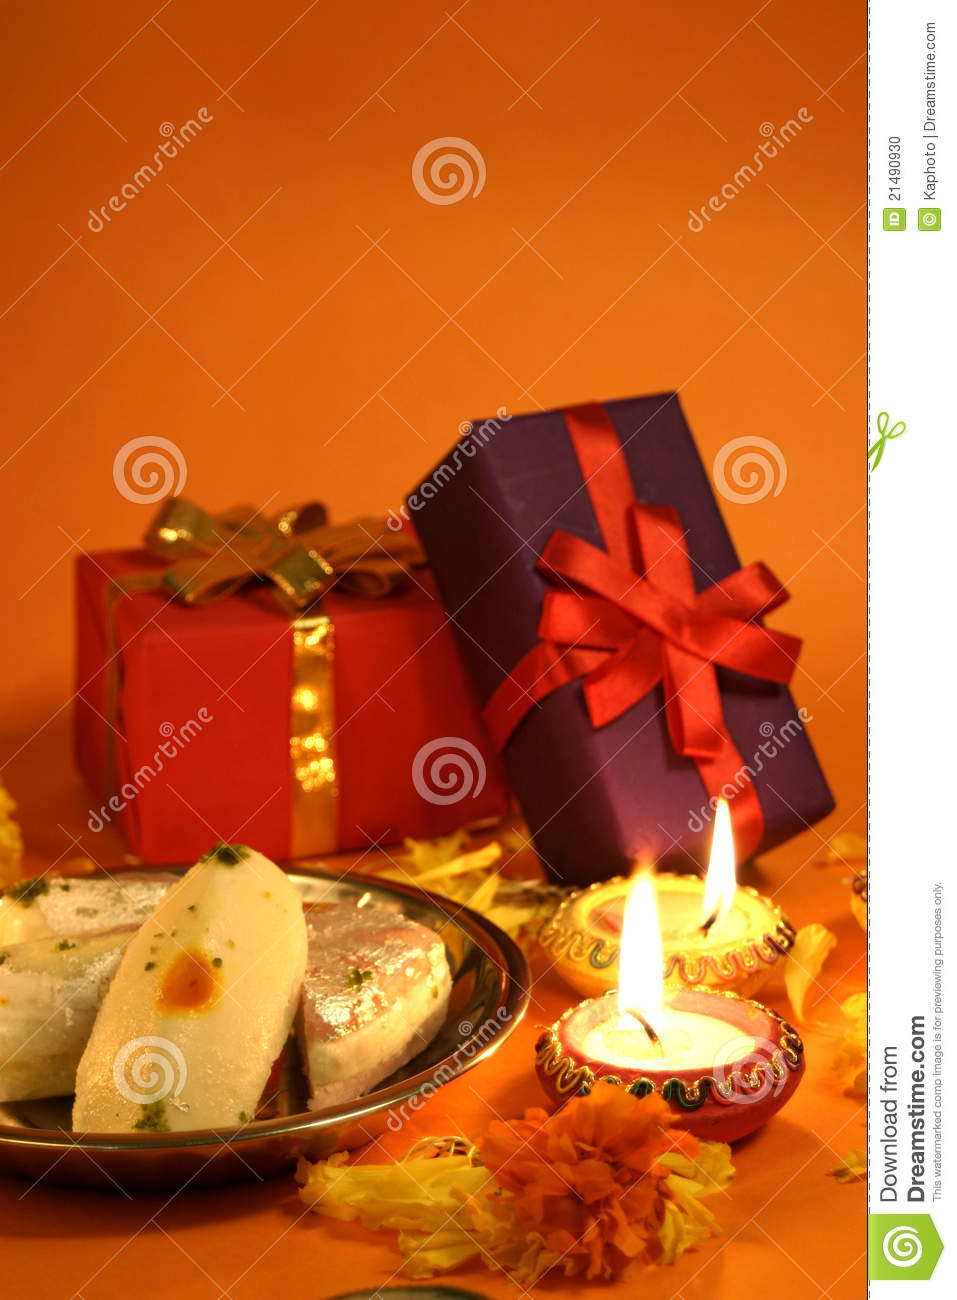 Diwali Gifts And Sweets Stock Photo Image 21490930